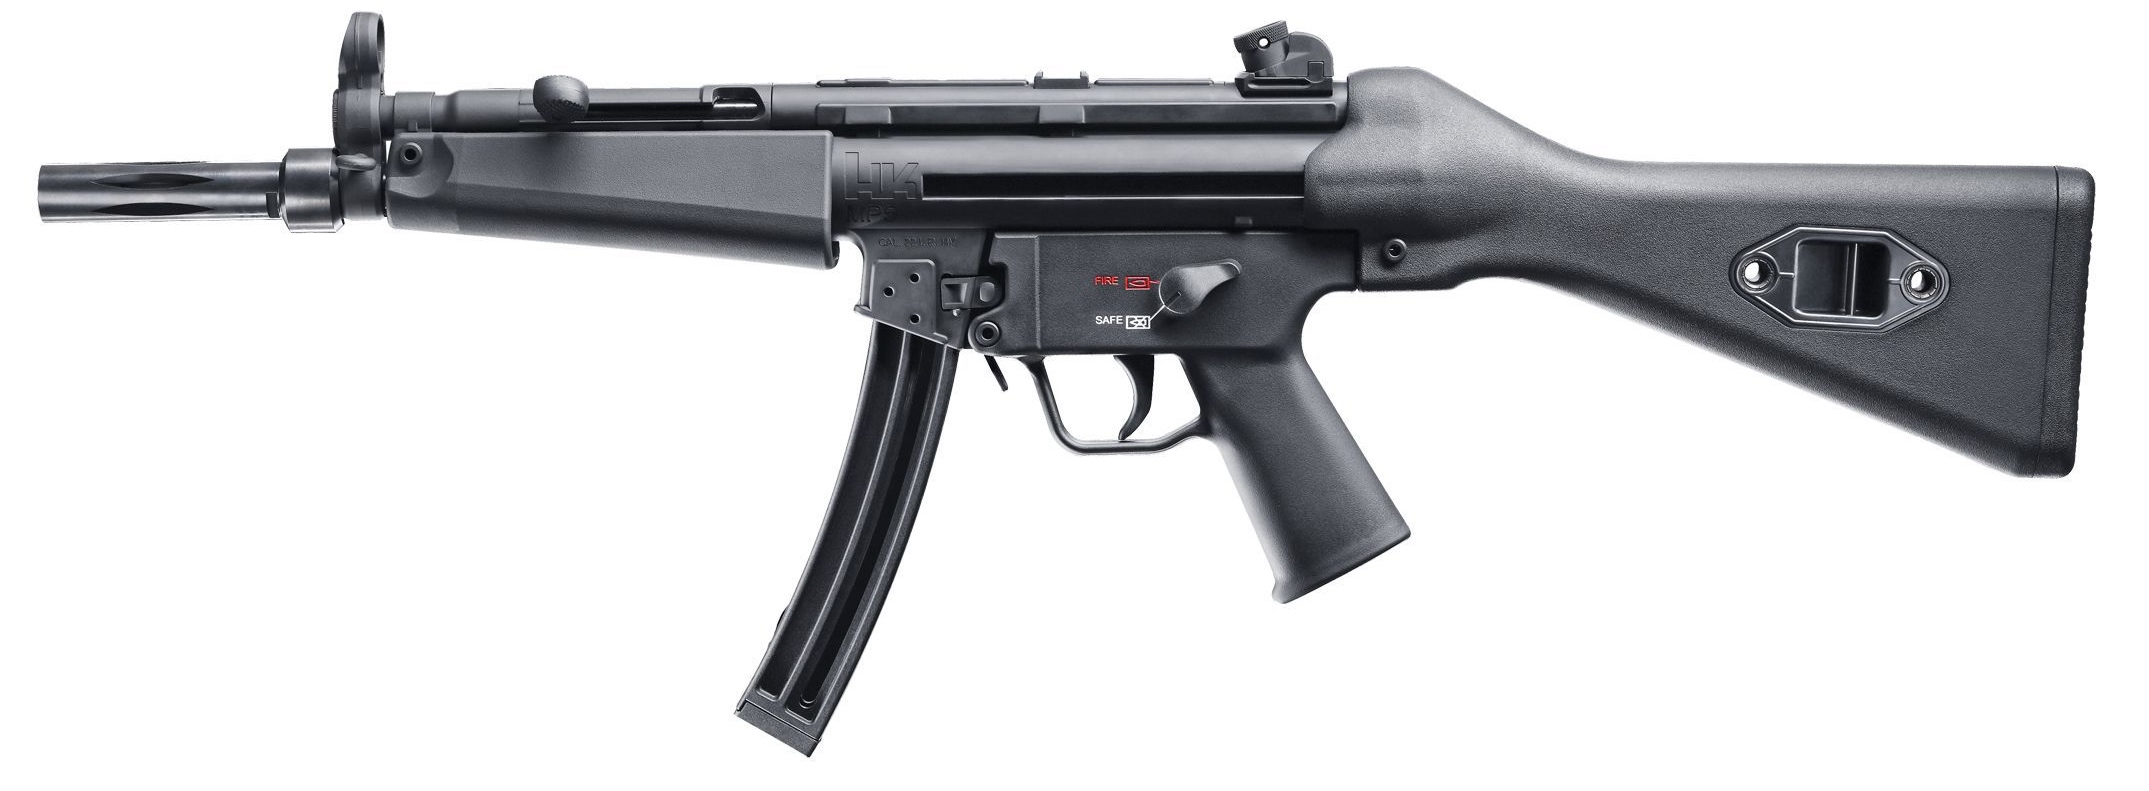 WALTHER H&K MP5 A4 Image